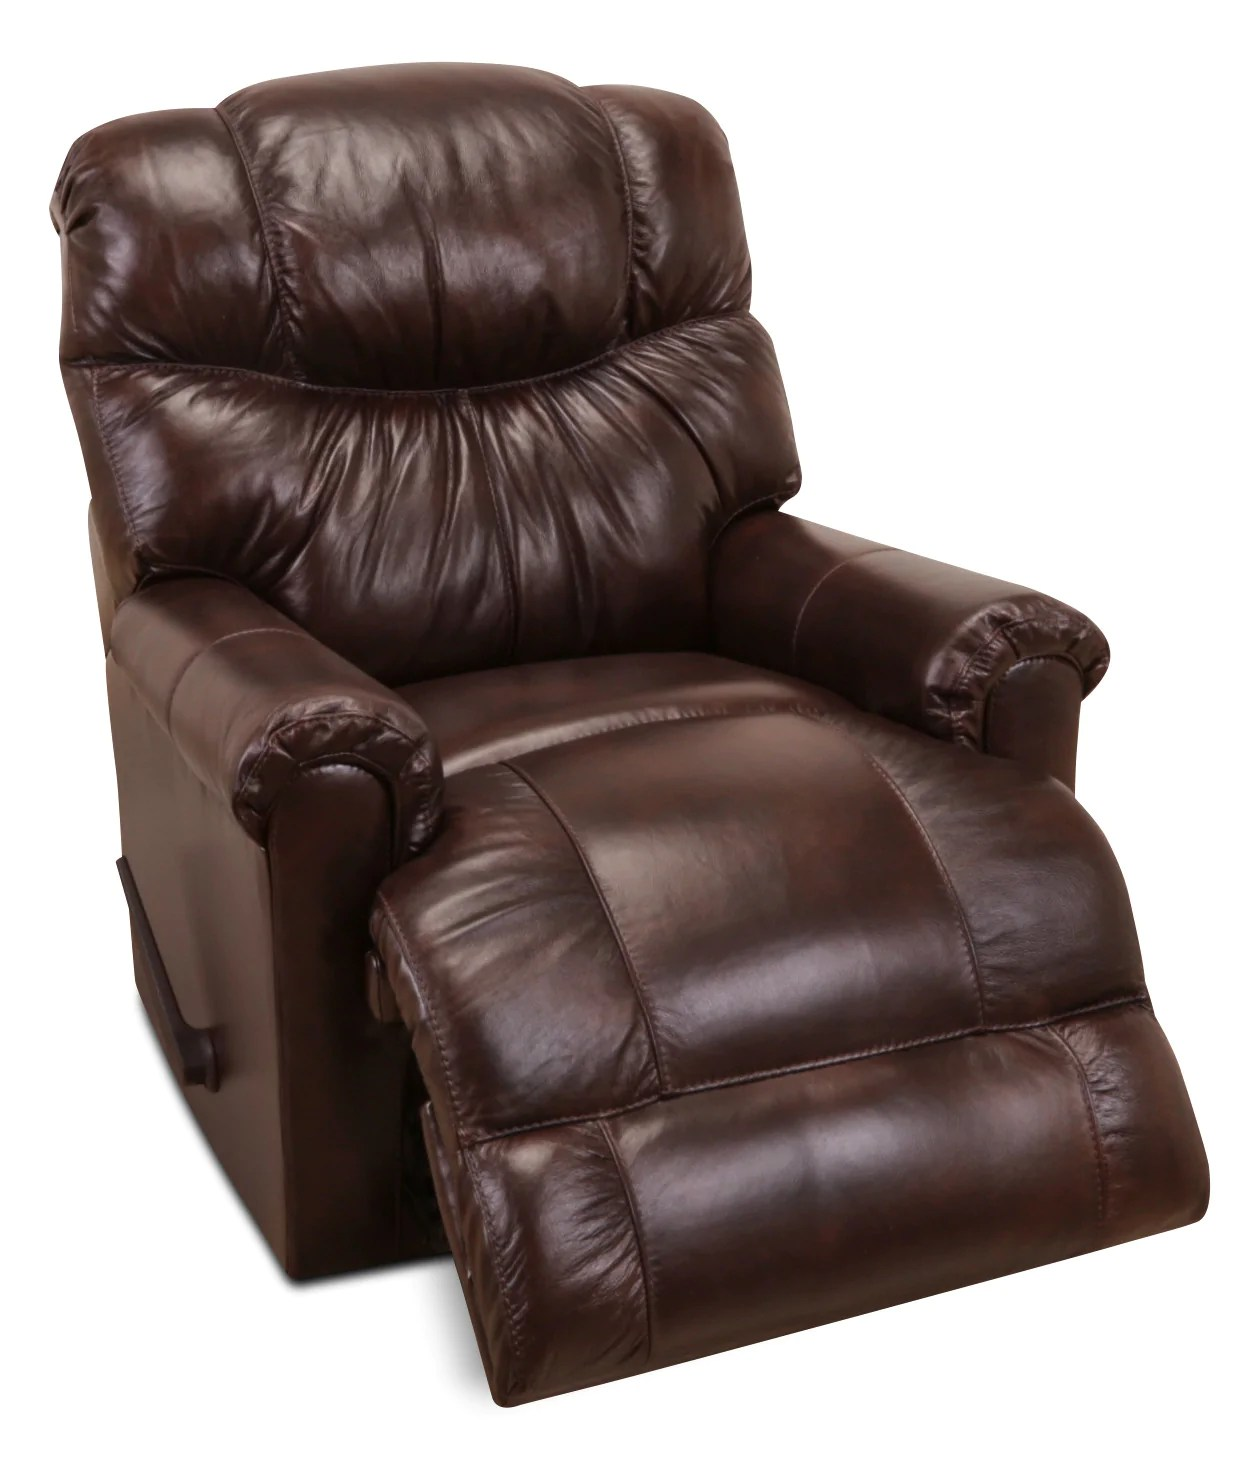 Leather Rocking Chair 4524 Genuine Leather Rocker Reclining Chair Java